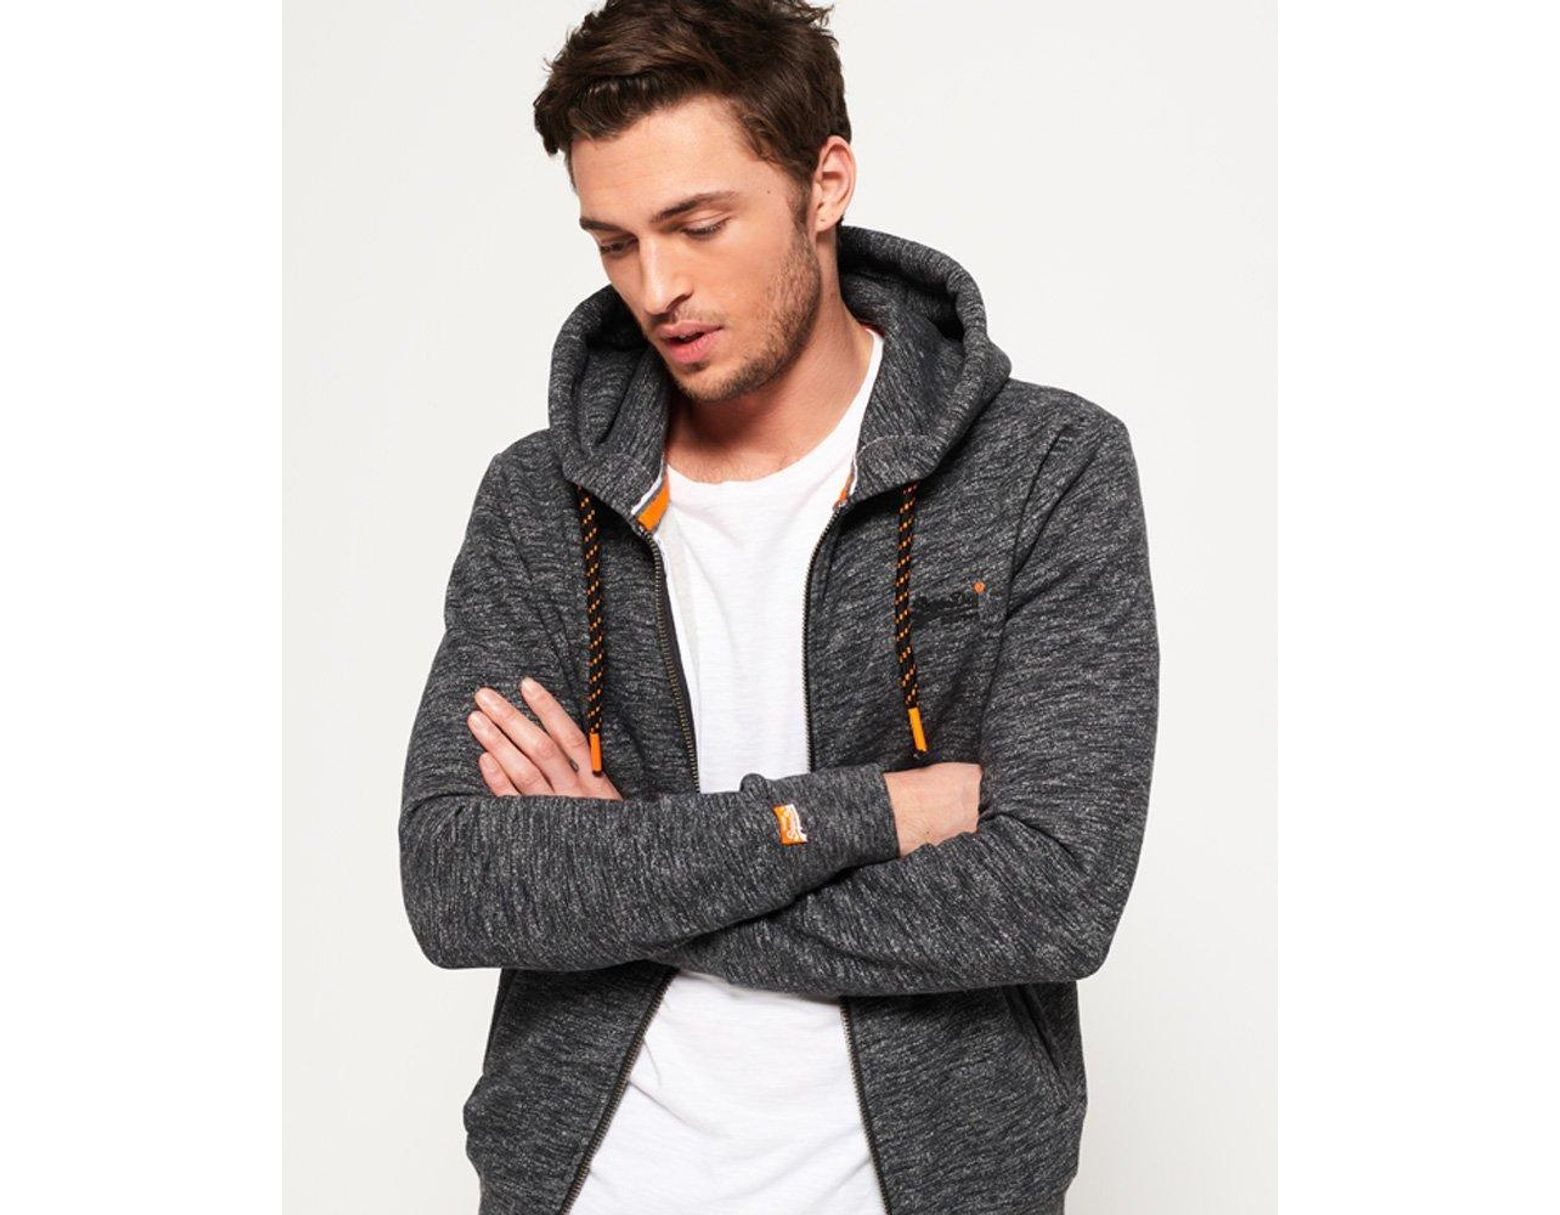 new product 8856b c92f2 Herren Superdry Herren Orange Label Hyper Pop Ziphood ...